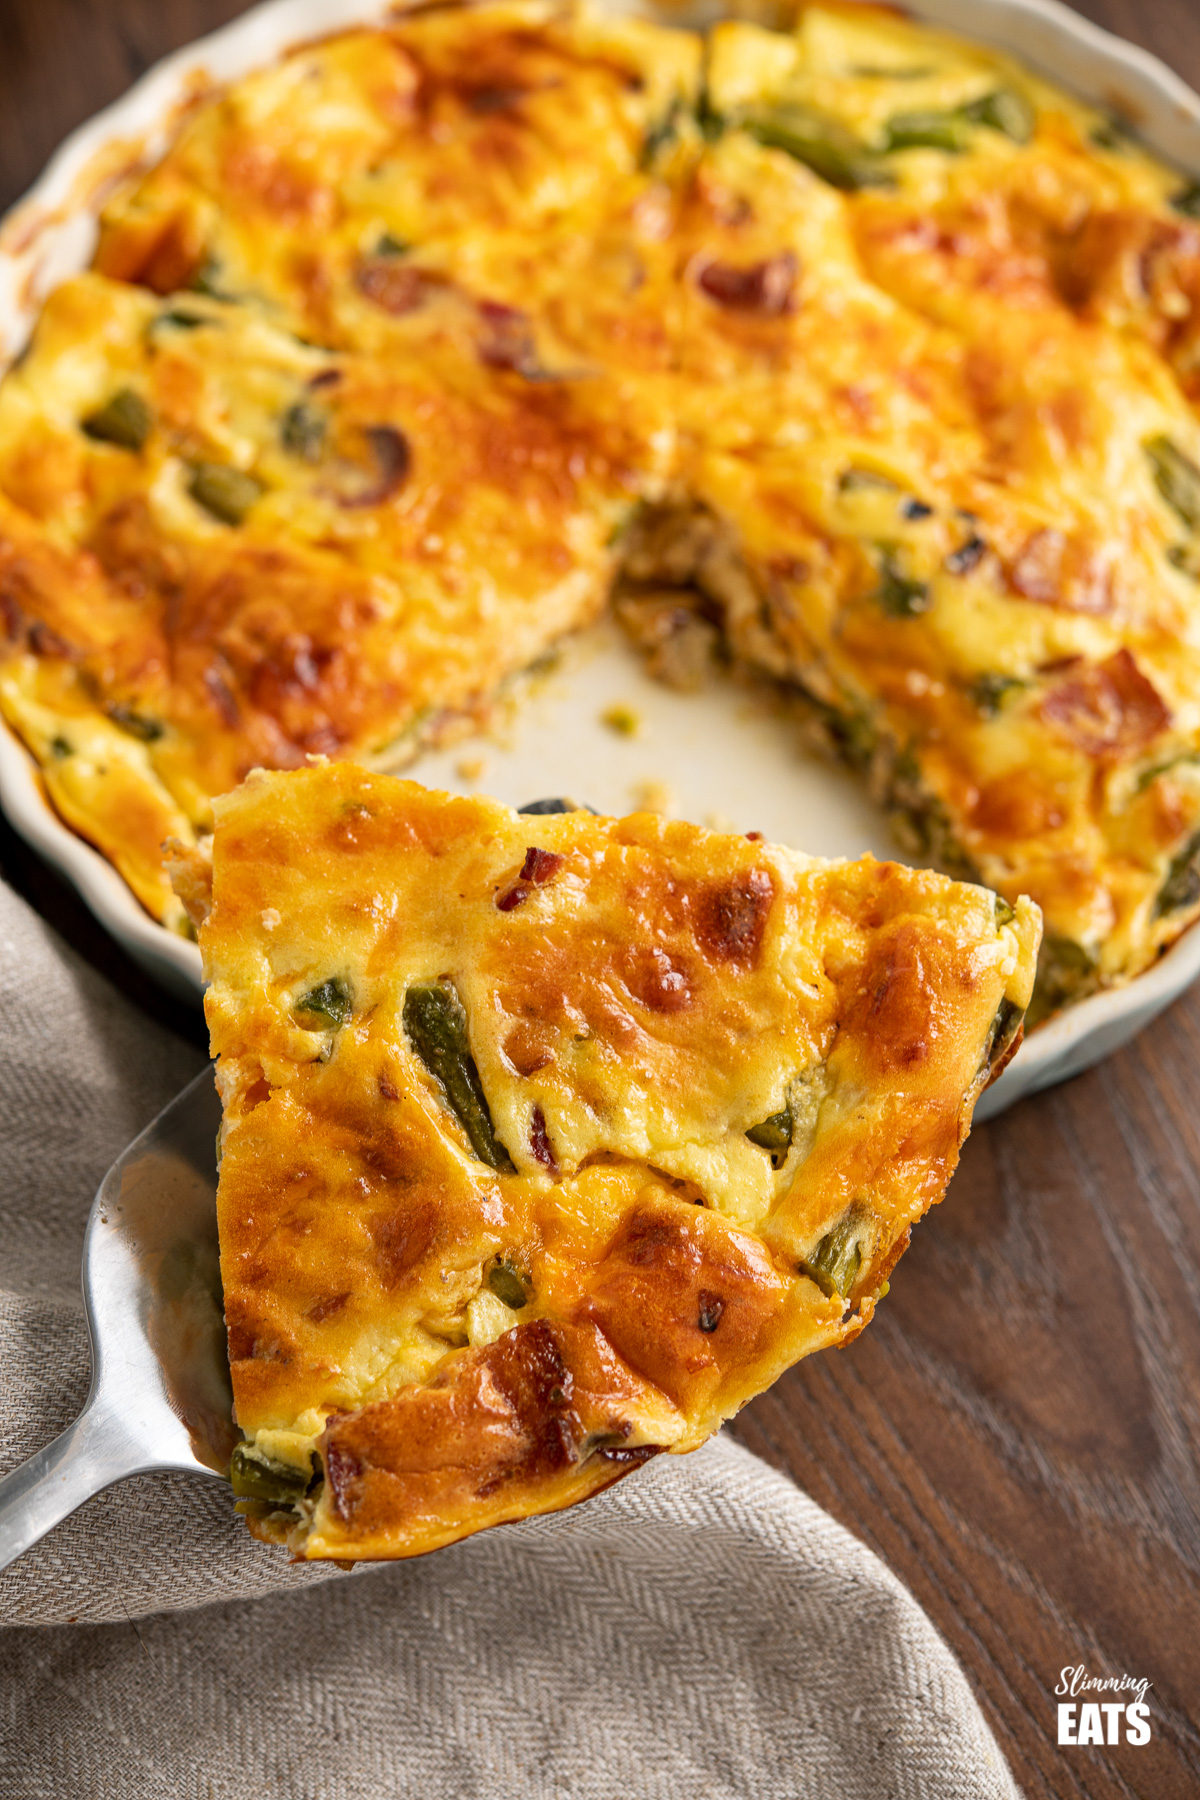 slice of Crustless Asparagus and Bacon Quiche on spatula from flan dish